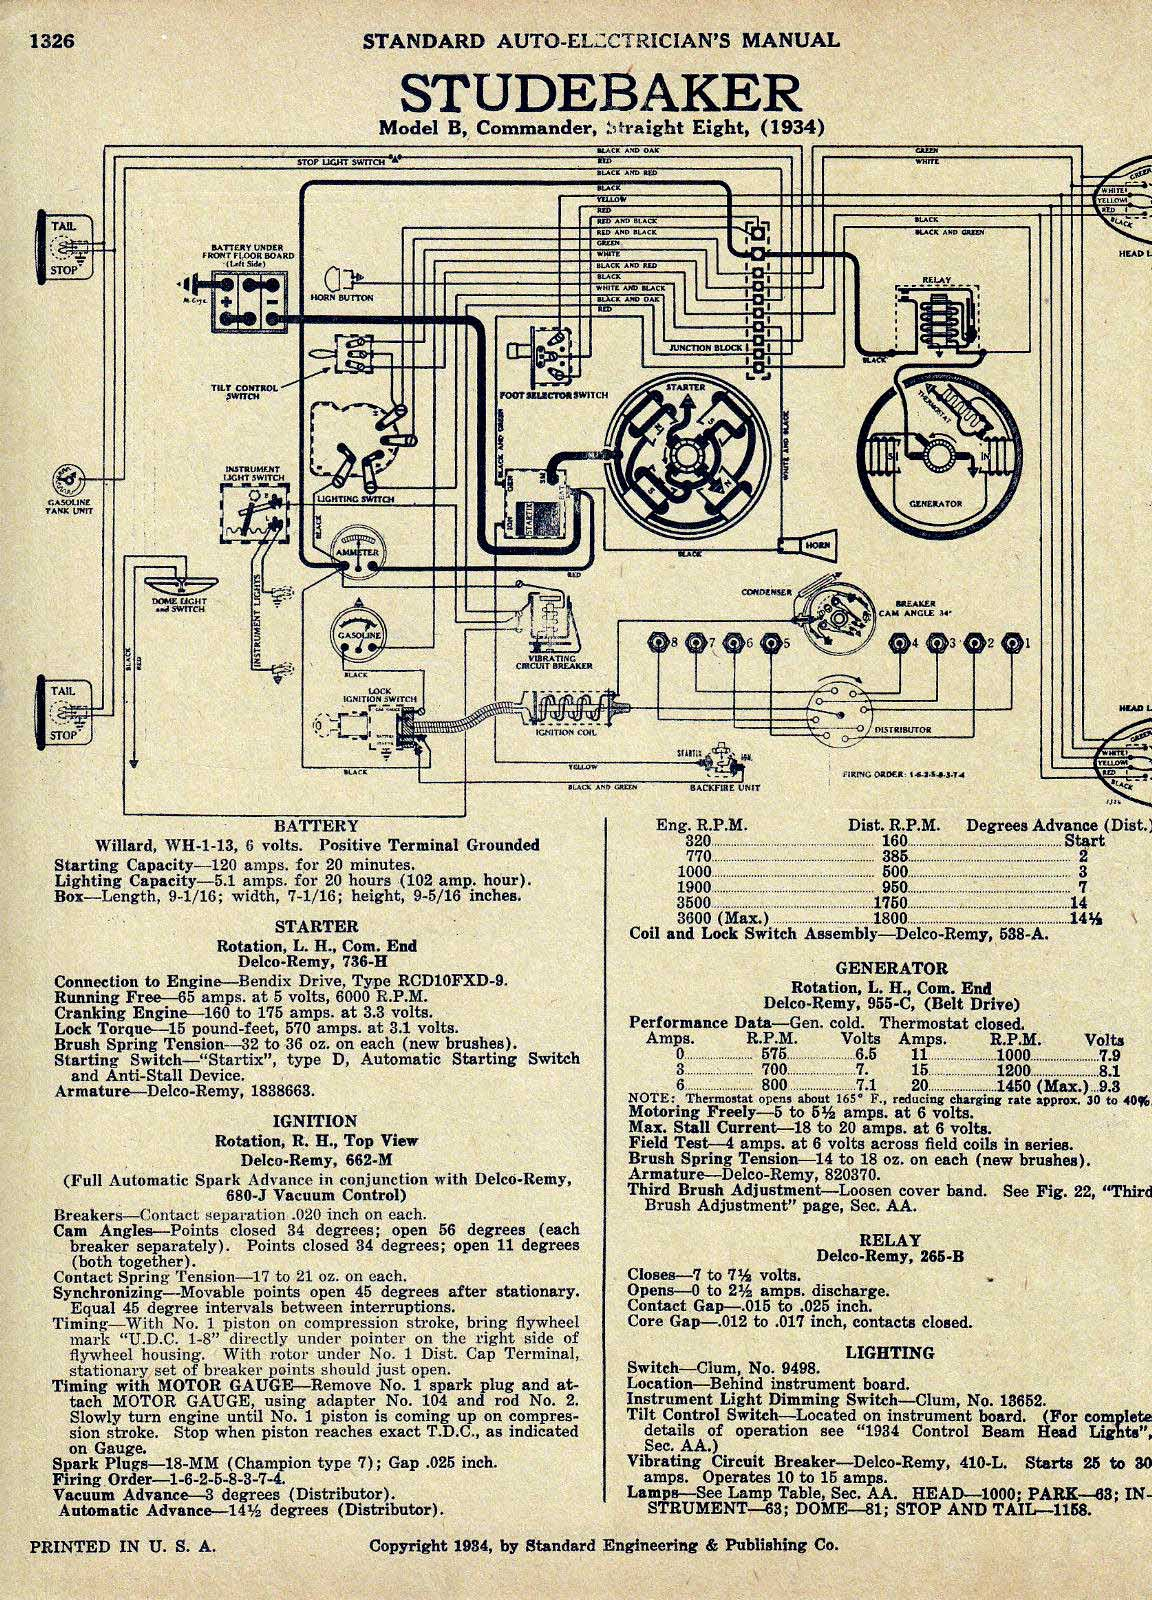 1951 Studebaker Wiring Diagram Trusted Diagrams 1950 Chevy Generator Bob Johnstones Resource Website Old 1959 Pickup